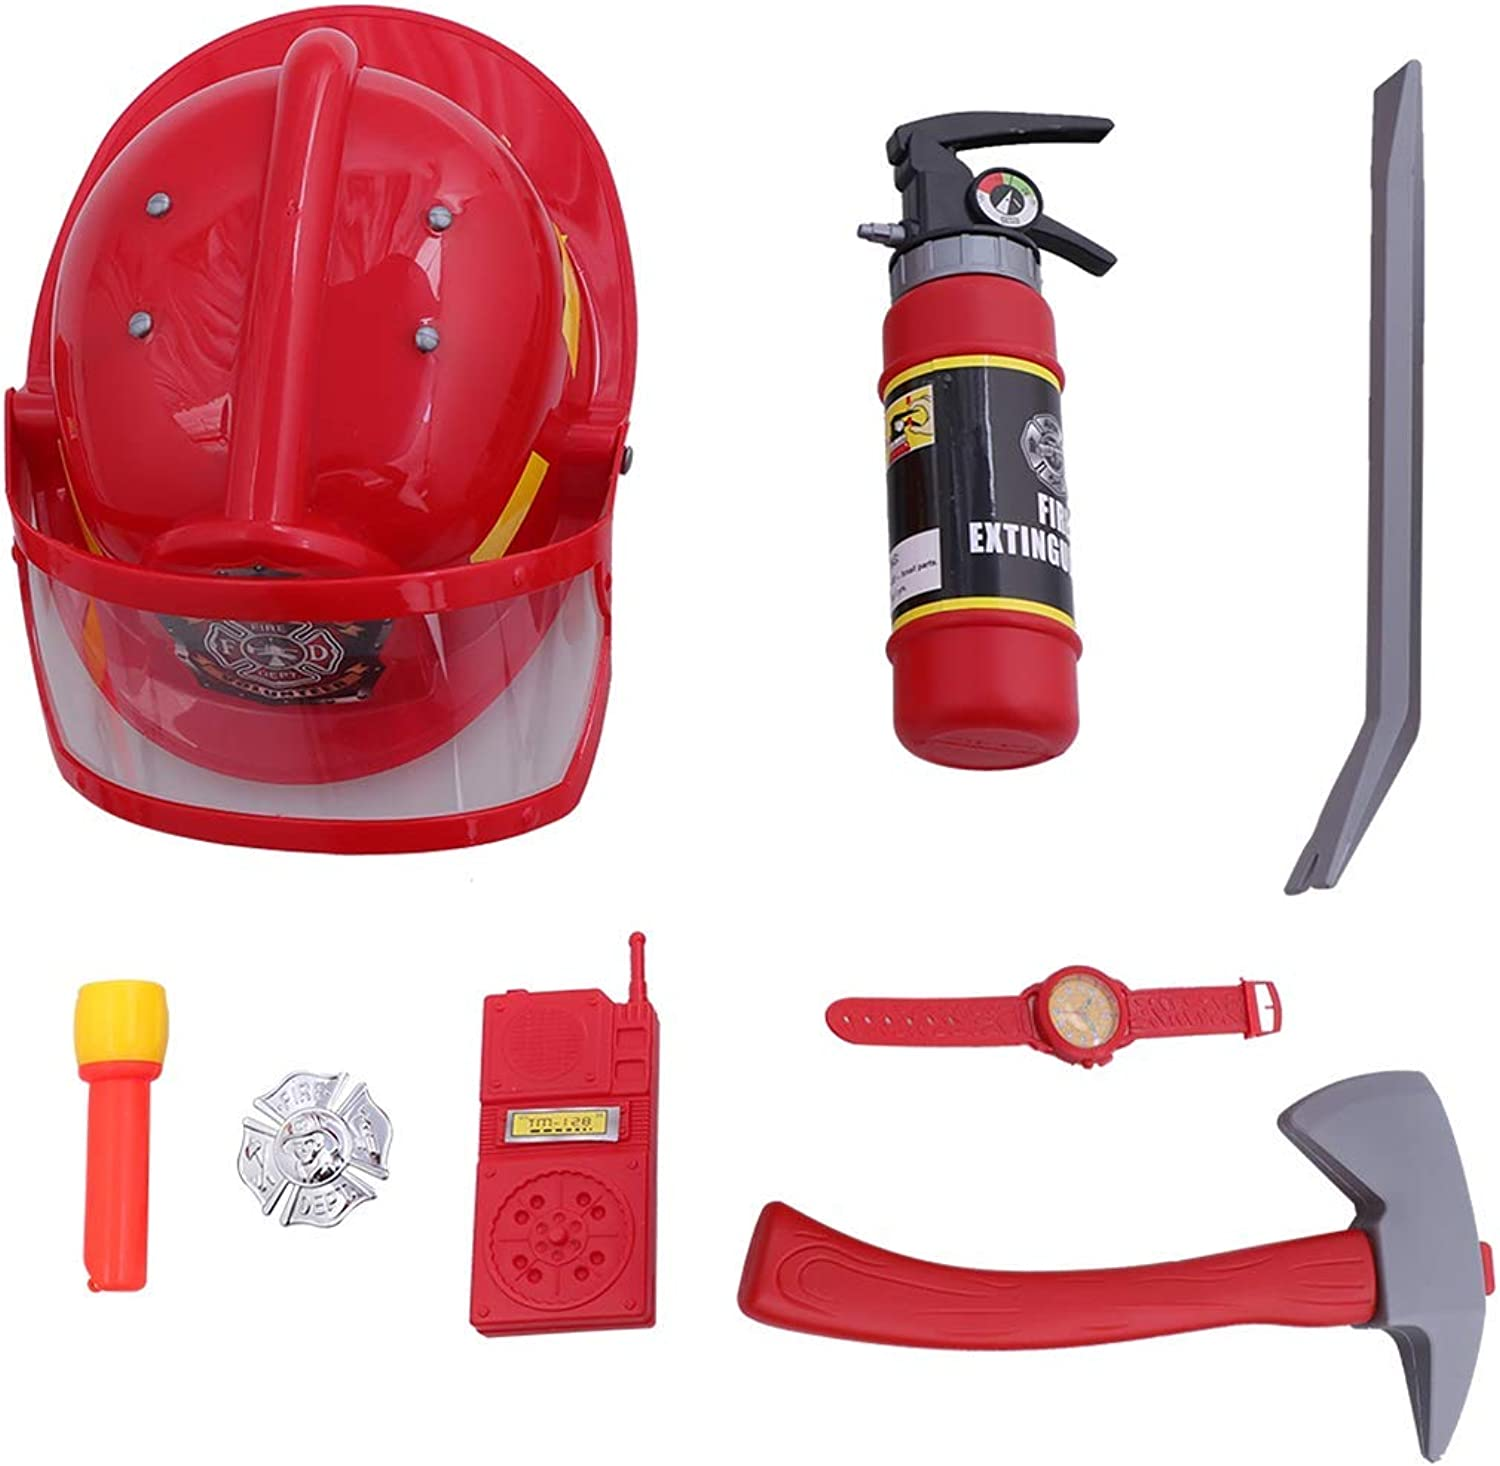 Flyme 9pcs Fireman Gear Firefighter Costume Role Play Toy Set for Kids with Helmet and Accessories